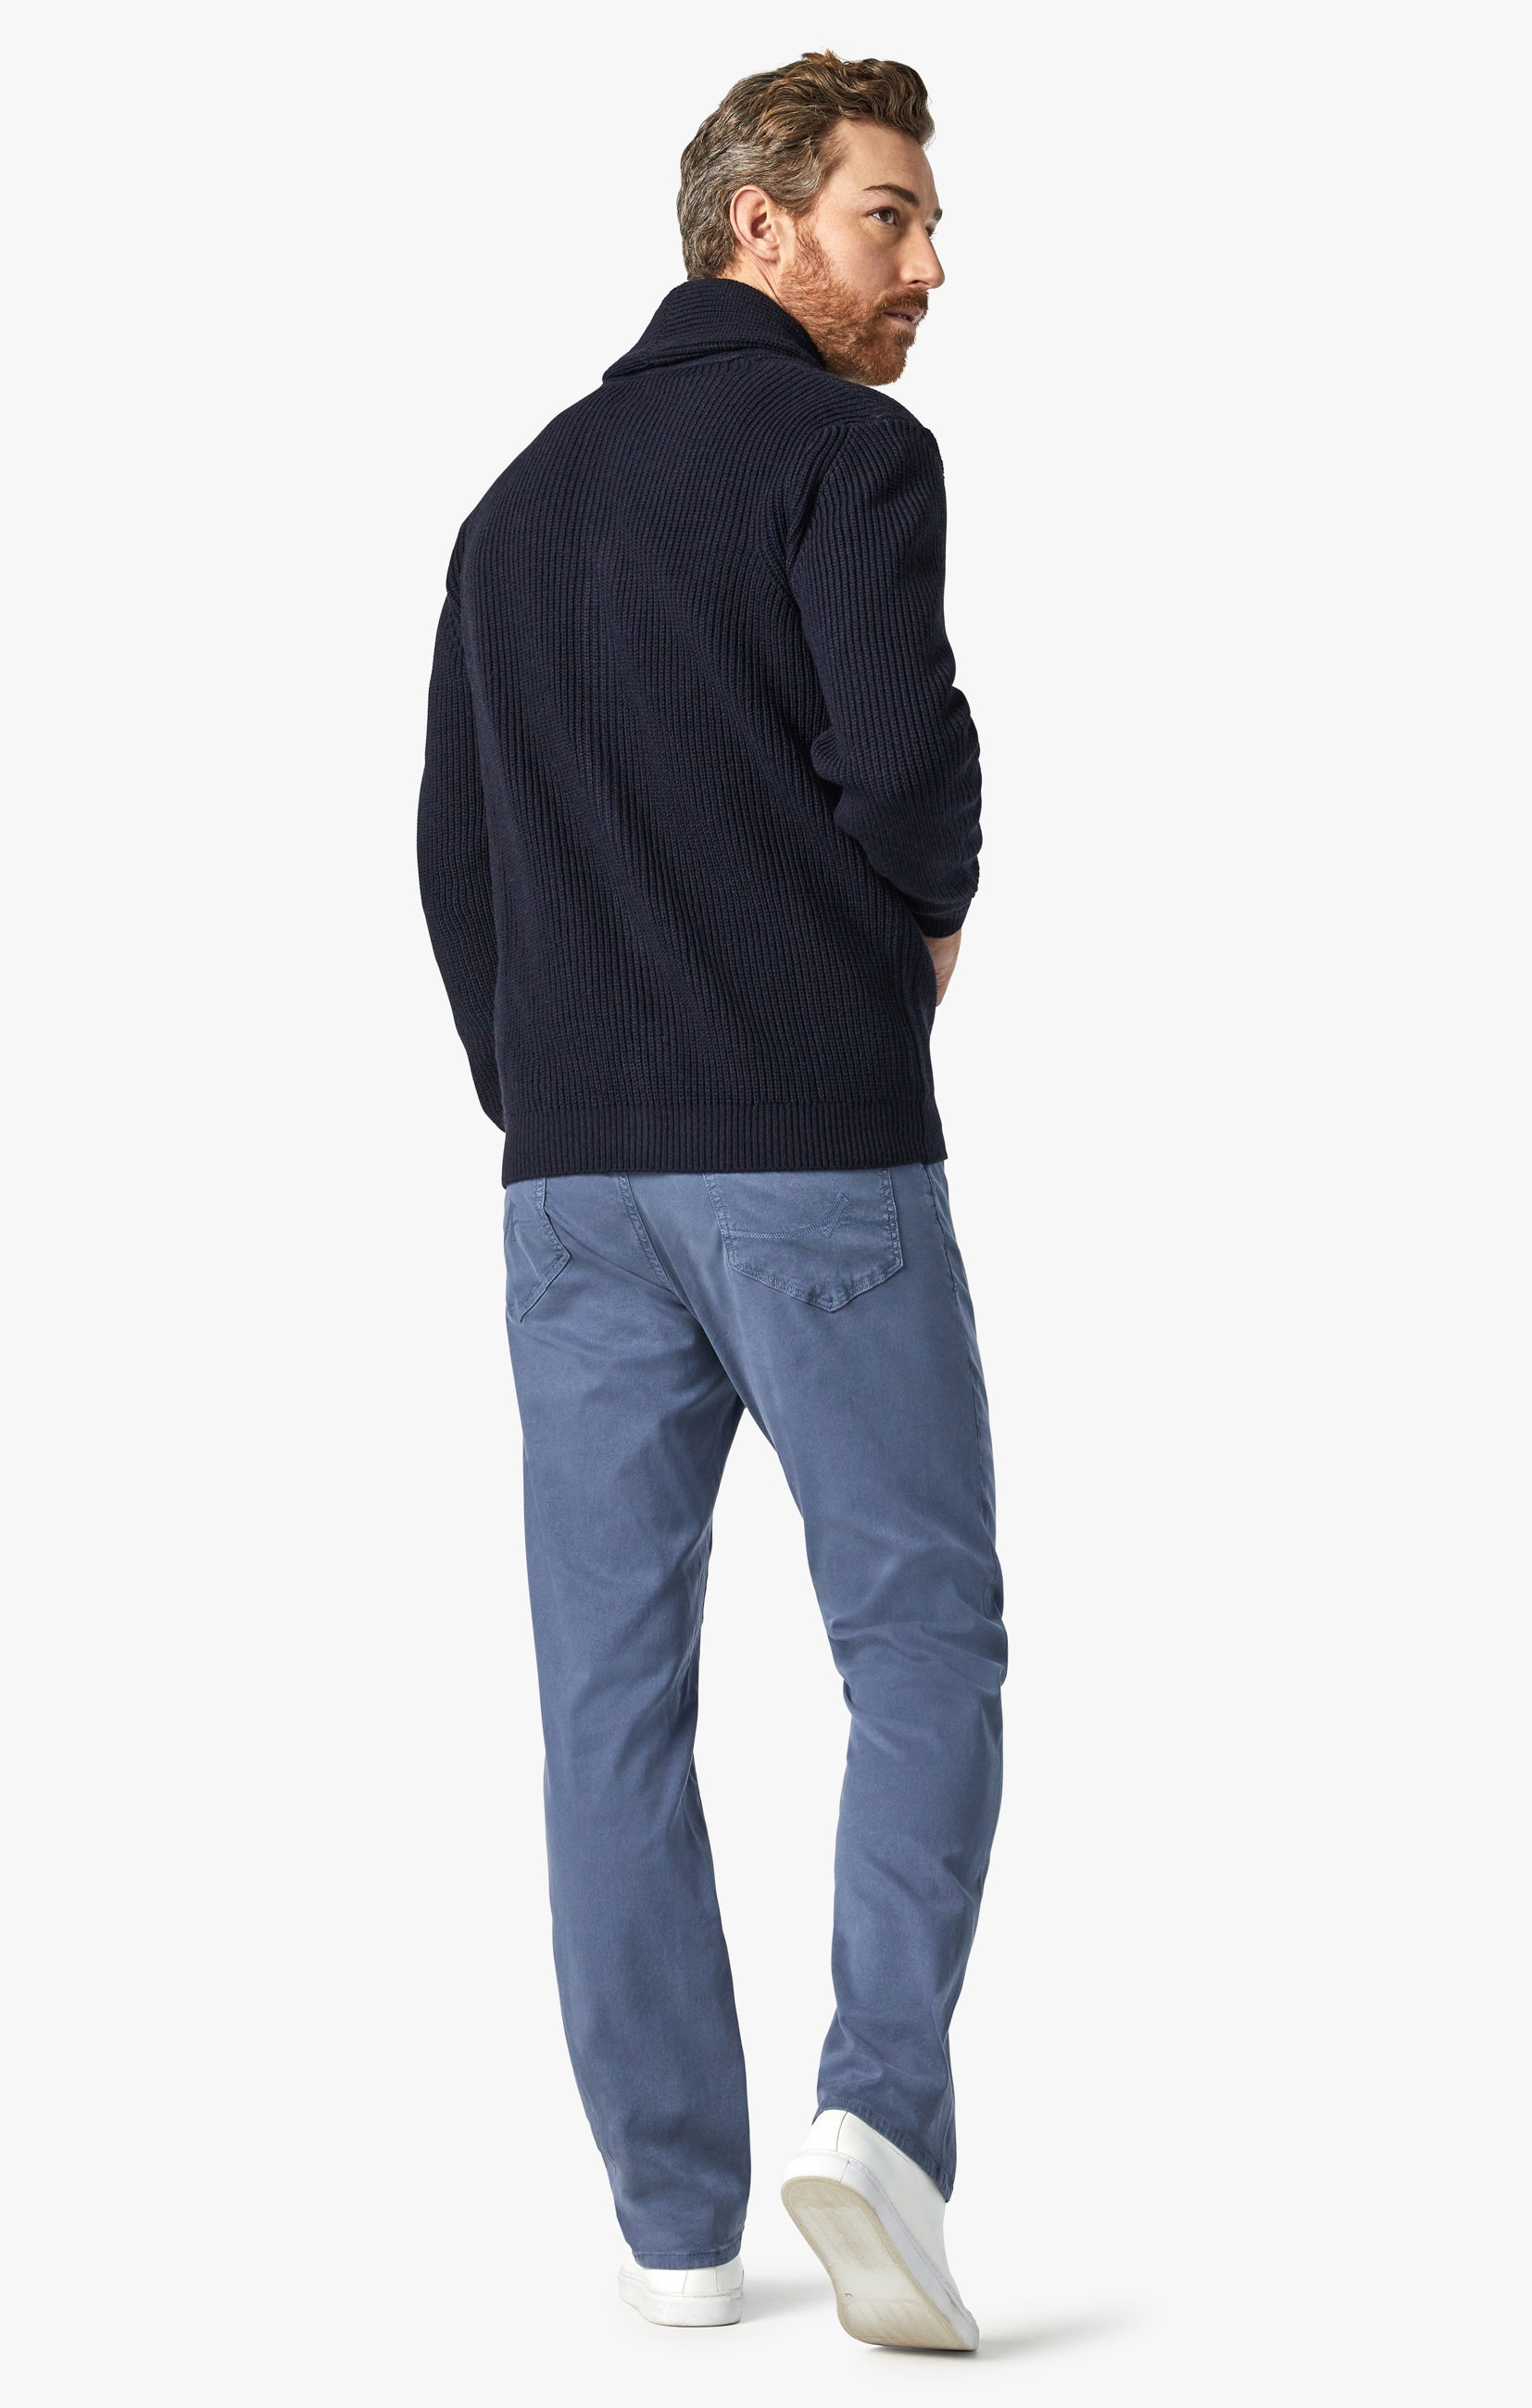 Charisma Relaxed Straight Pants In Horizon Soft Touch Image 3